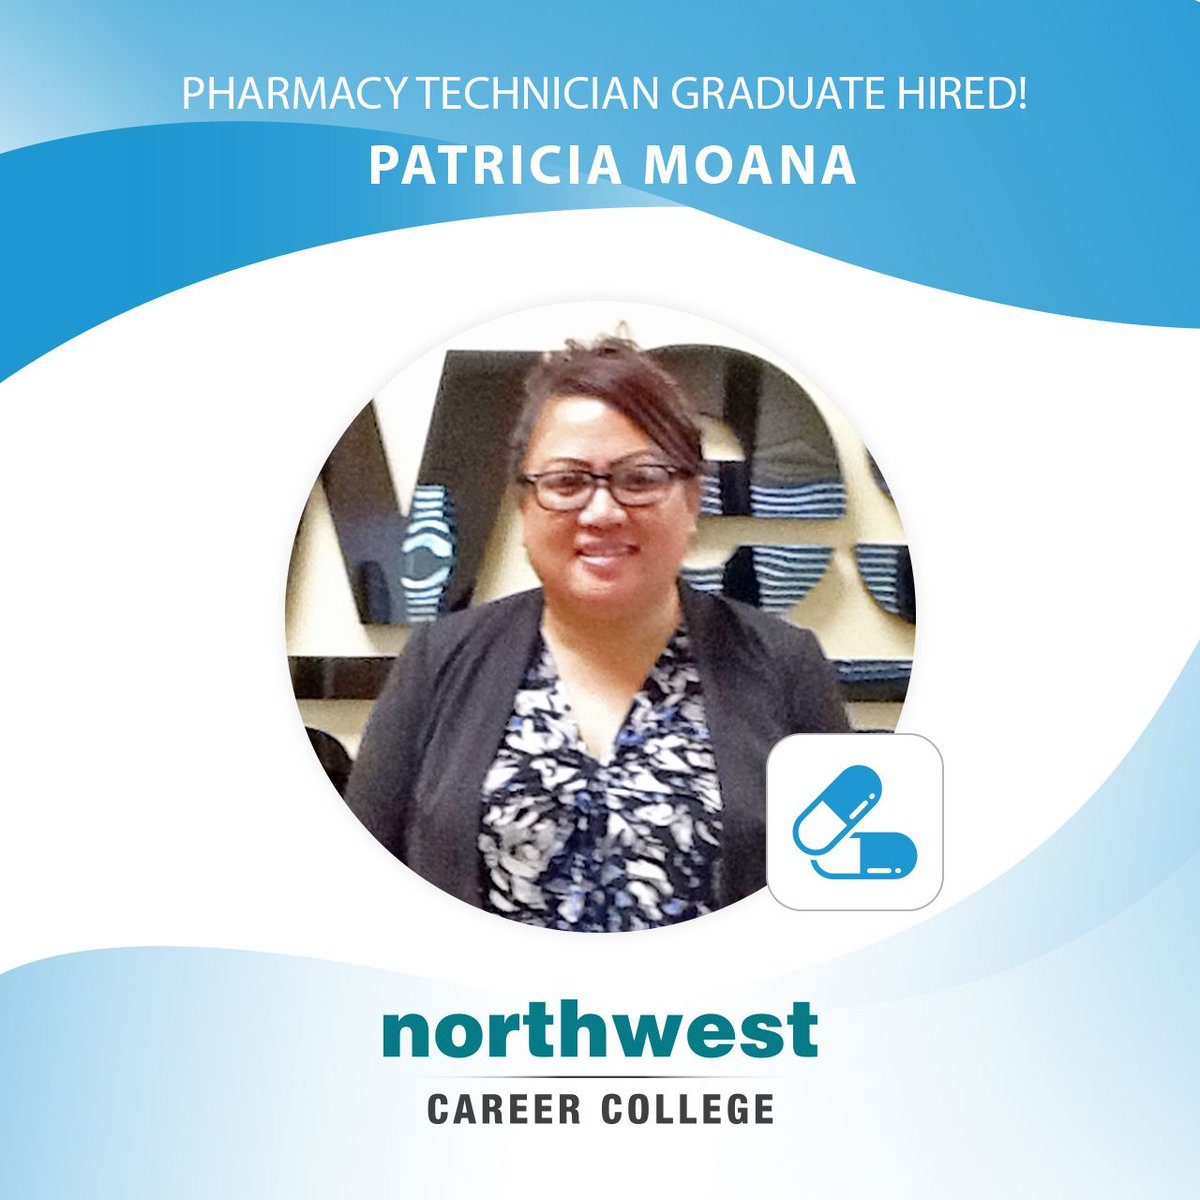 Nccvegas A Twitter Congratulations Go Out To Northwest Career College Pharmacy Technician Graduate Patricia Moana Cpht Who Just Accepted A Joyful New Job With Cvs Pharmacy All That Hard Work Paid Off